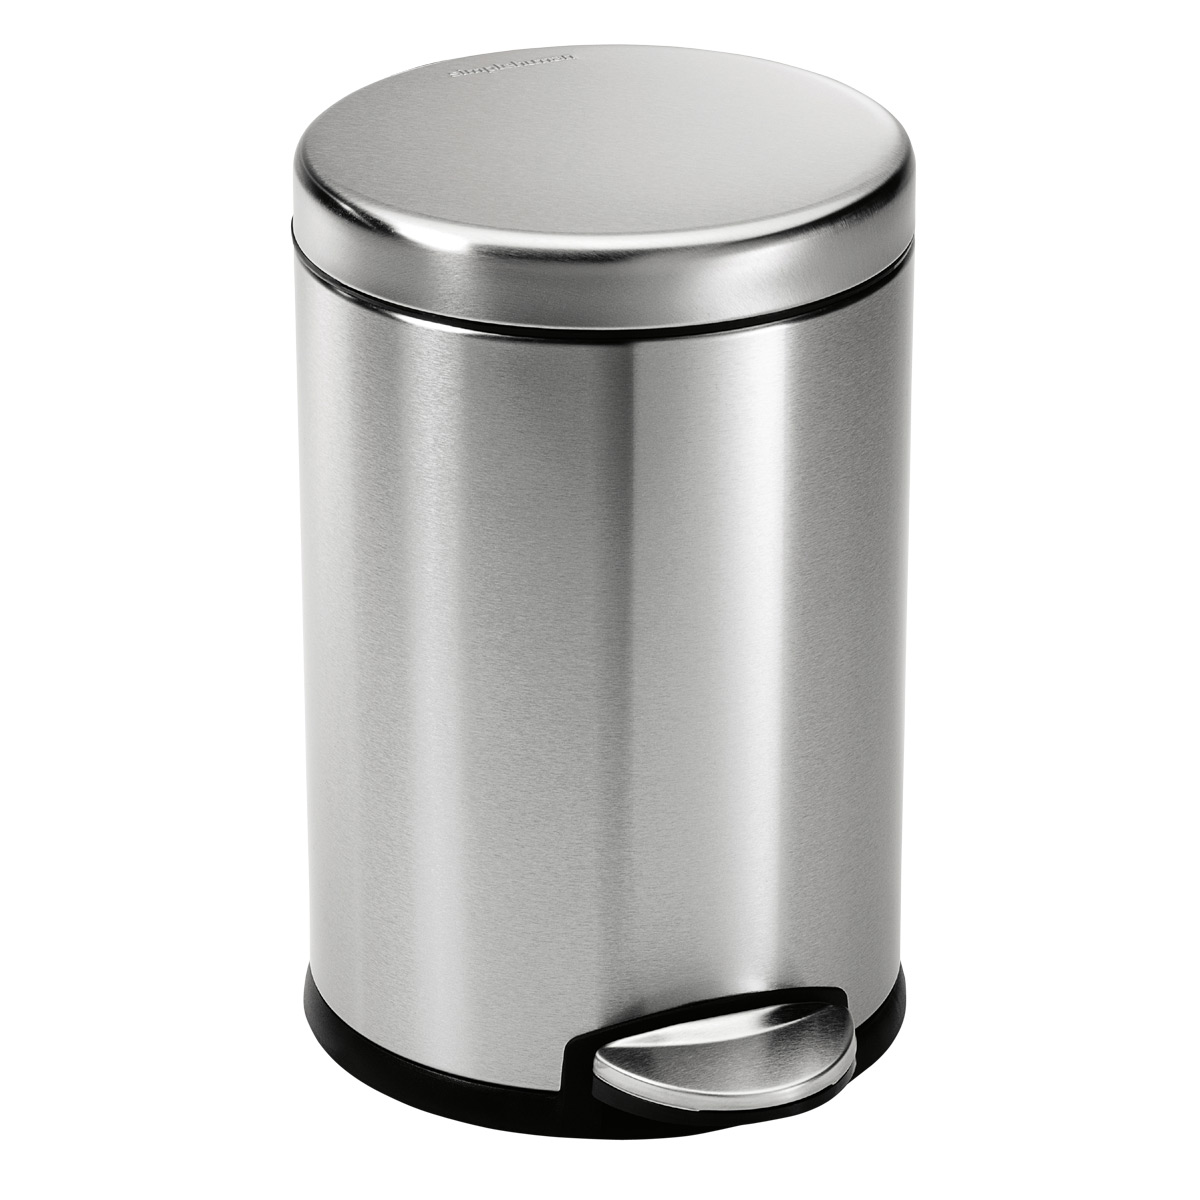 simplehuman Stainless Steel 1.2 gal. Round Step Trash Can